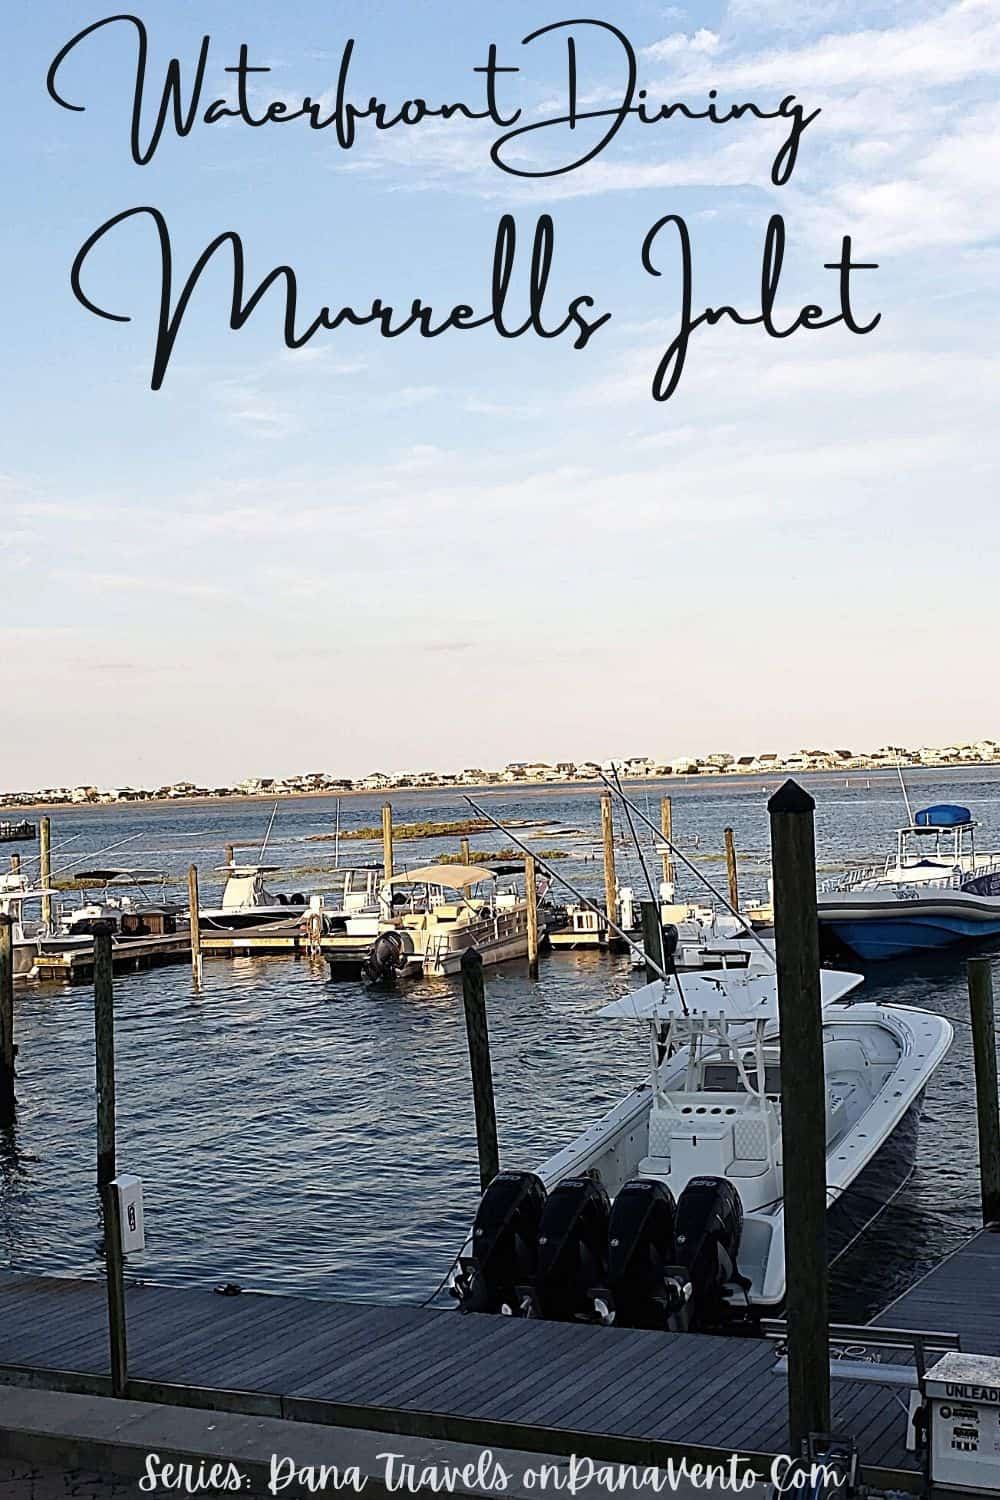 Waterfront Dining Murrells Inlet boardwalk with boats